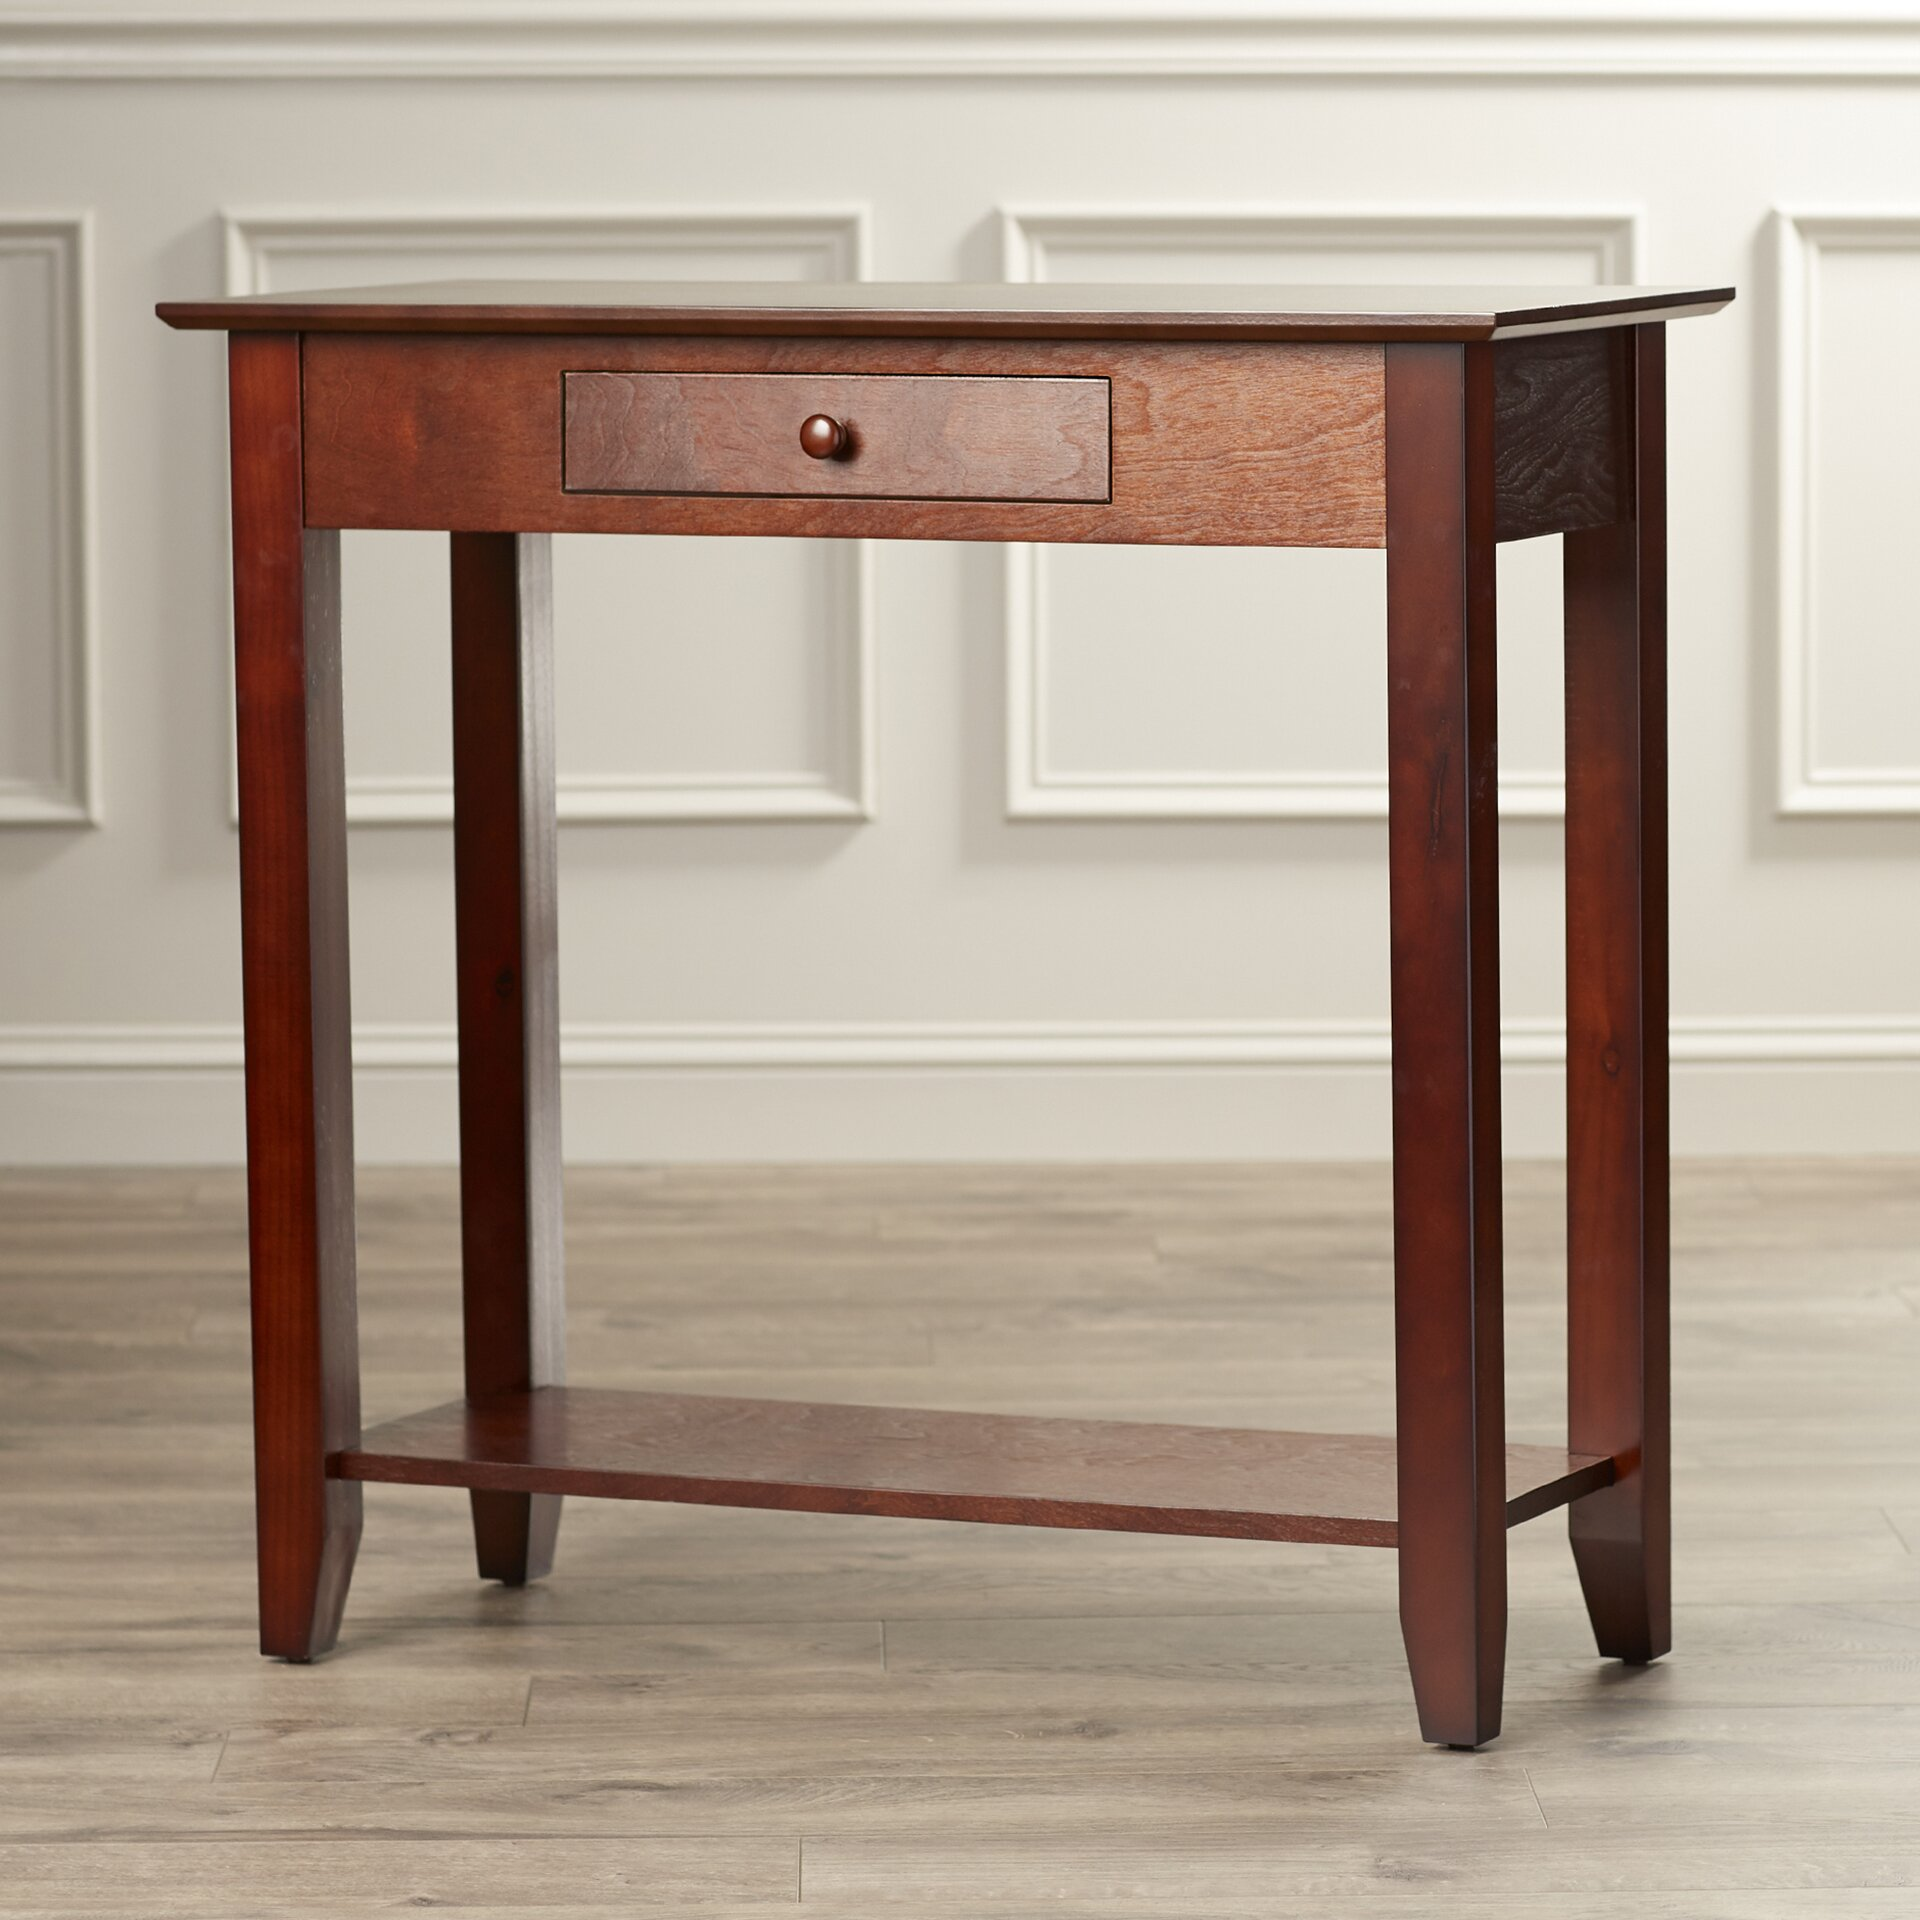 Convenience Concepts American Heritage Console Table. Lift Top End Table. The Neat Desk. Herman Miller Corner Desk. Two Tone Kitchen Table. Good Posture At Desk. Victorian Secretary Desk. Metal Drawer Cabinets. Luxo Desk Lamp